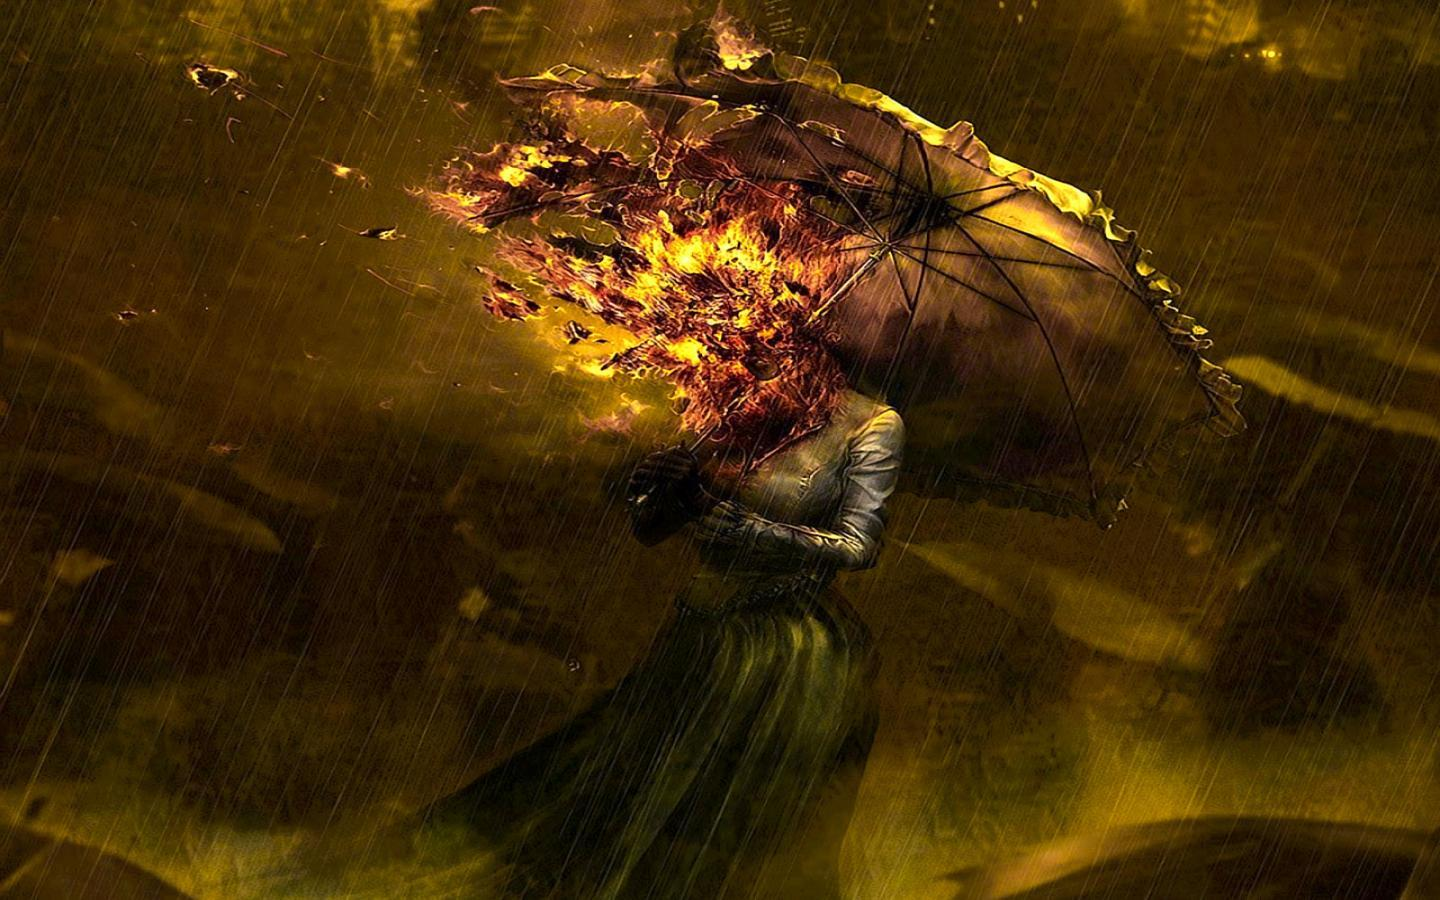 Free Download HD Horrible on Fire Head Girl Umbrella Facebook Timeline Cover - Download FREE Widescreen HD Horrible on Fire Head Girl Umbrella Facebook Timeline Cover